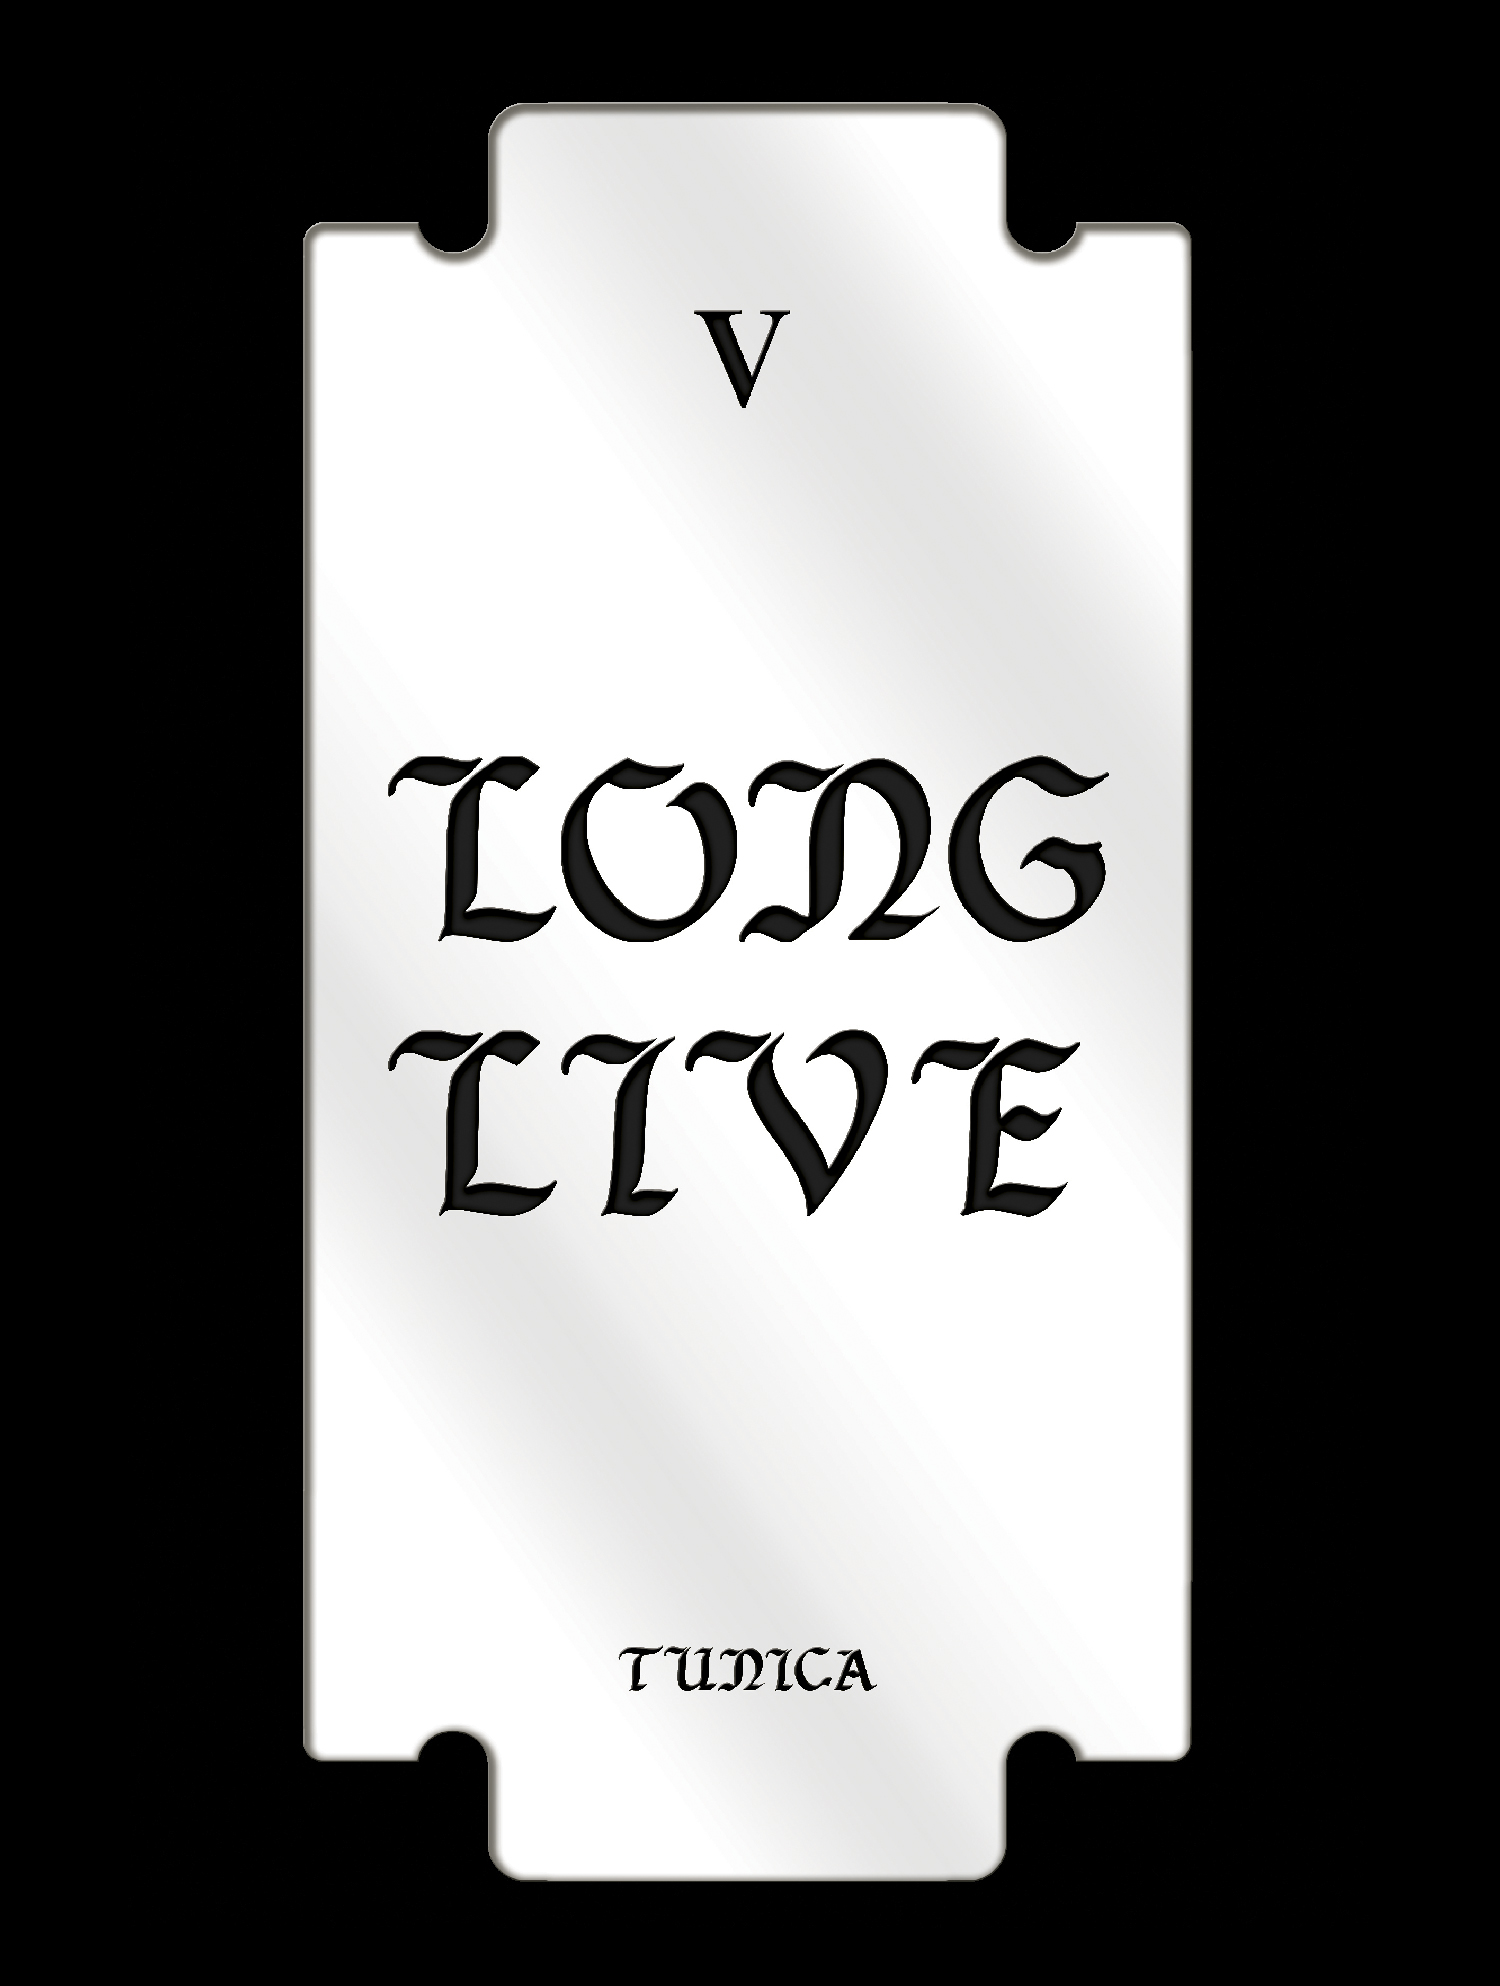 Long Live, Mirrored Plexiglass, 11.48 x22.98 inches, 2016